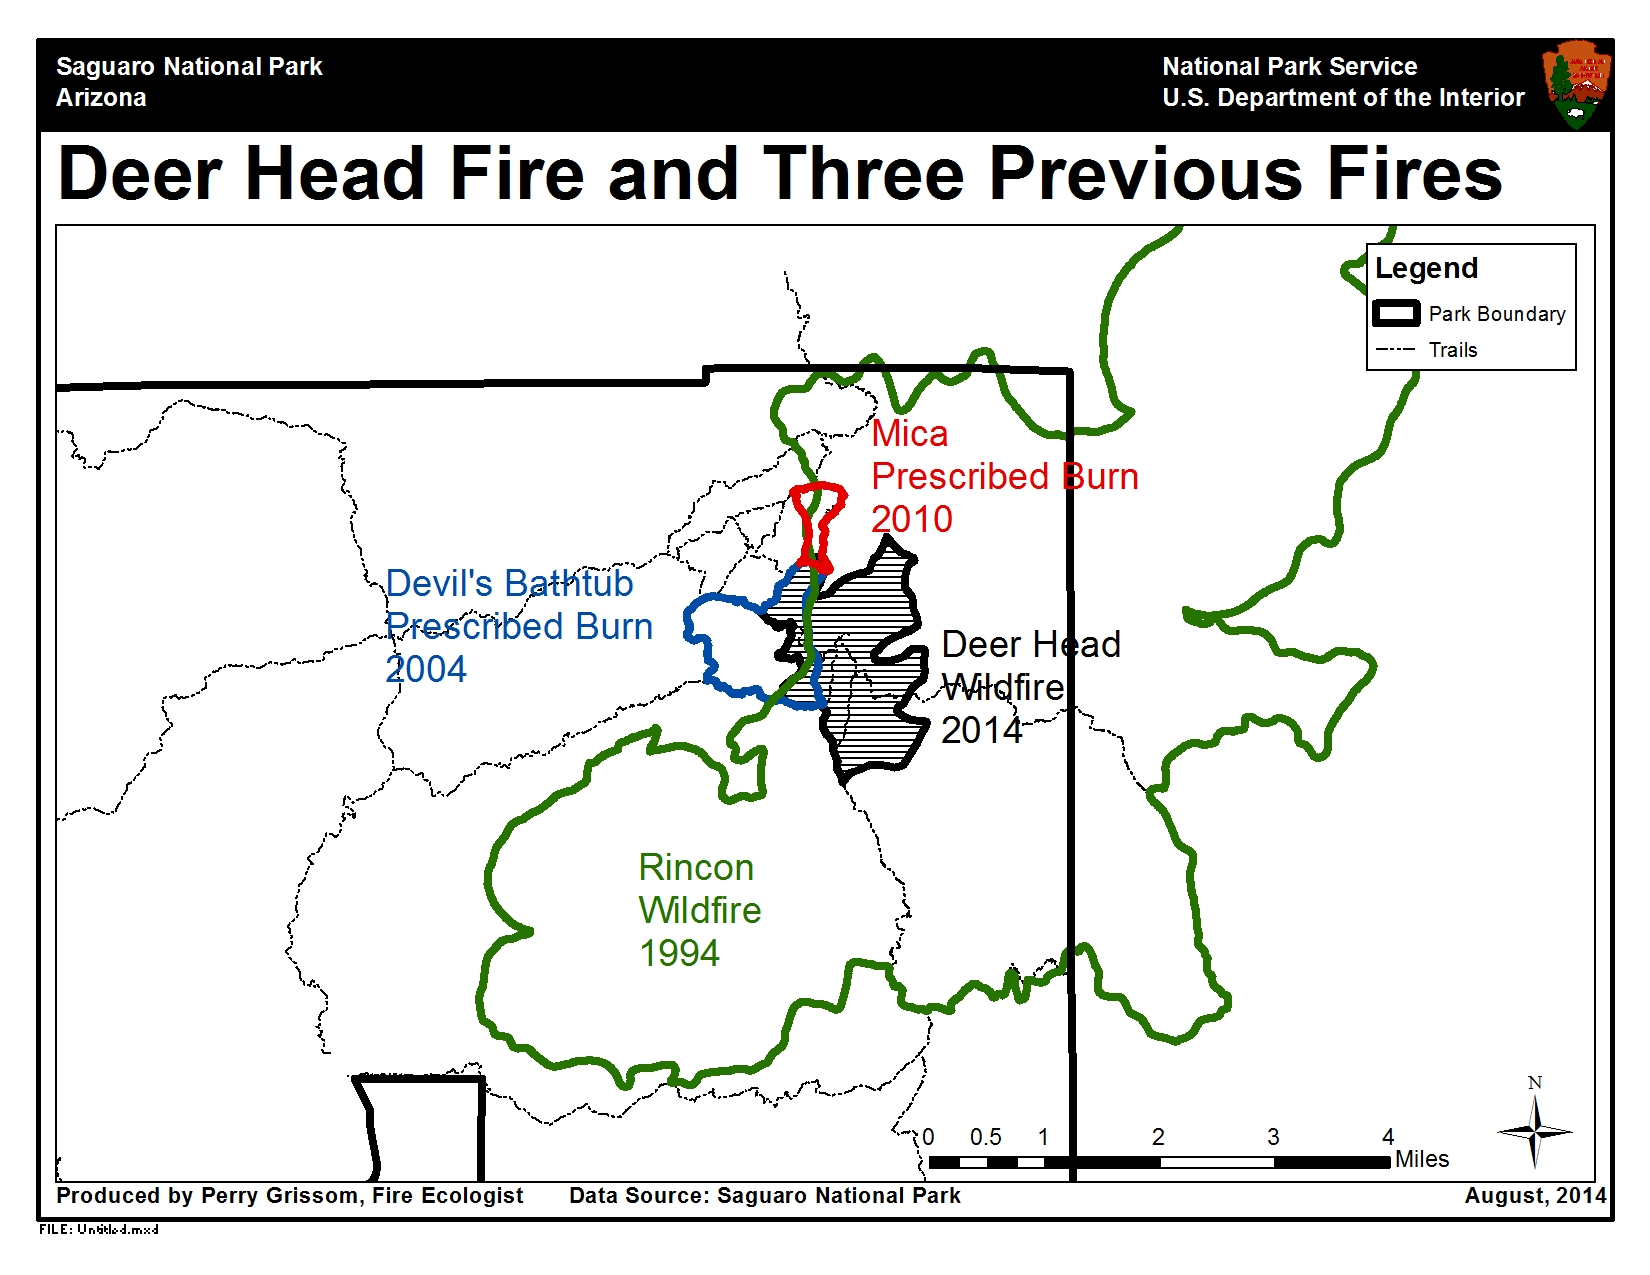 Deer Head Fire and Previous Burns